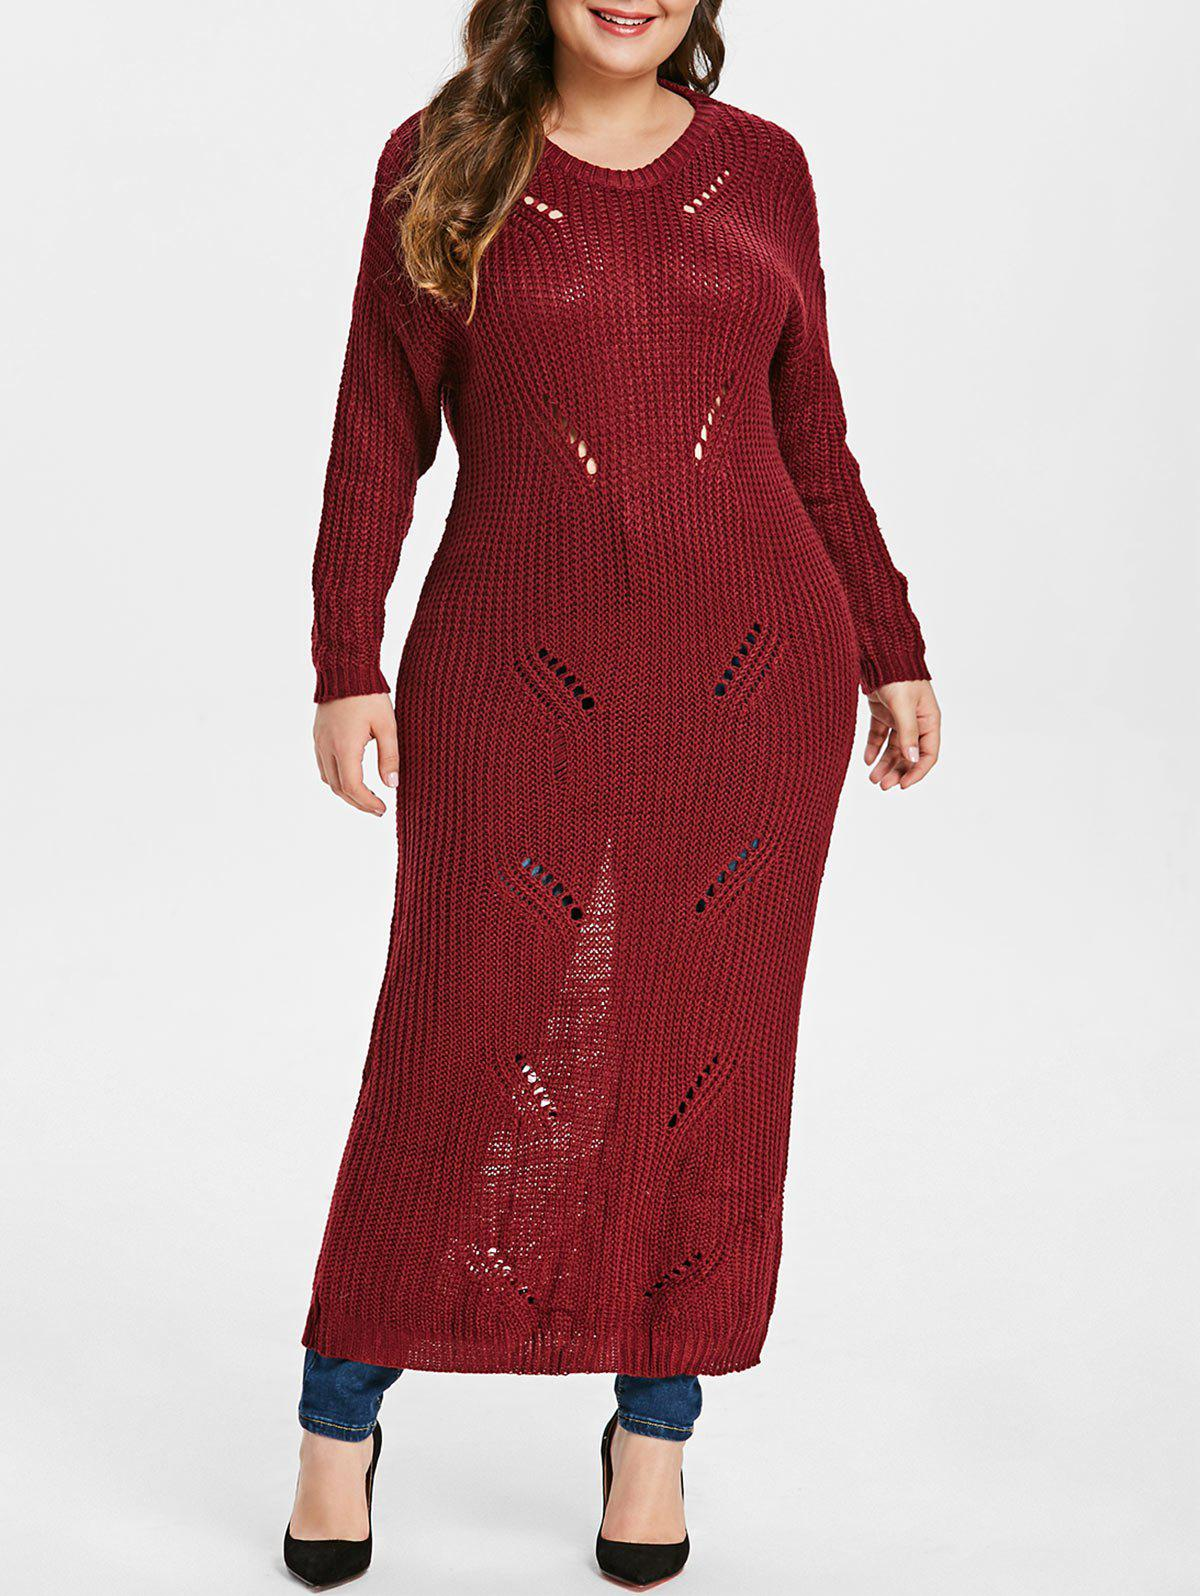 2019 Plus Size Ripped Maxi Sweater Dress Rosegalcom